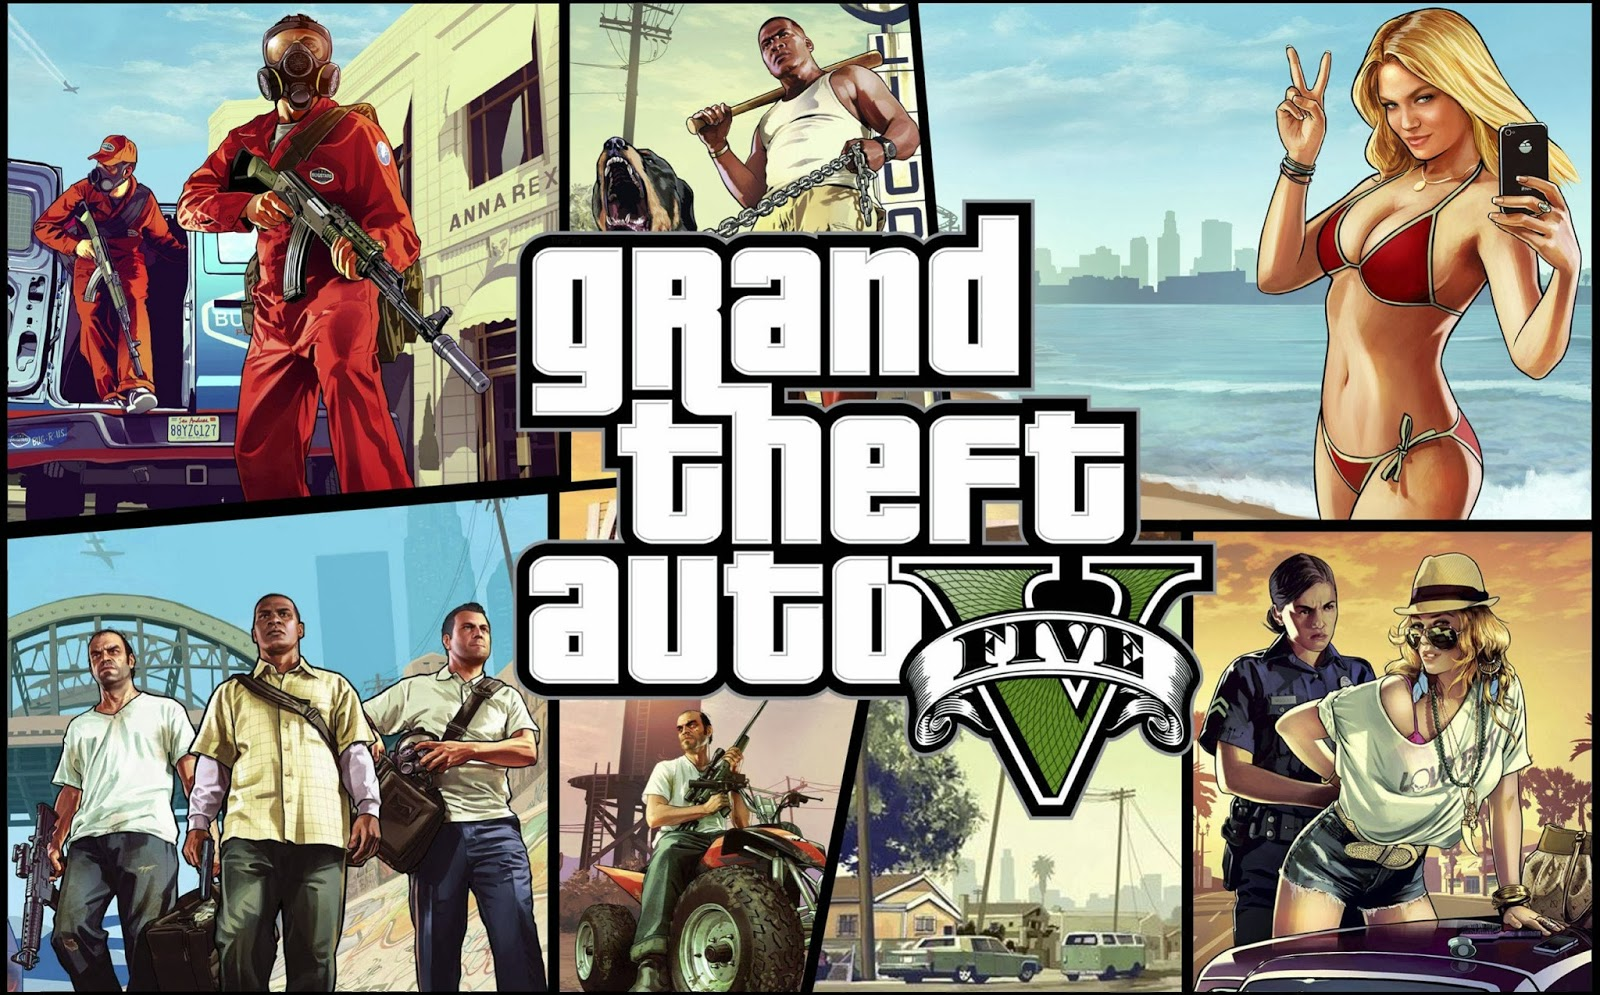 Cara Download Game Gta Online game pc gta 5 full version game ini merupakan game bergenre action dan 1600x995